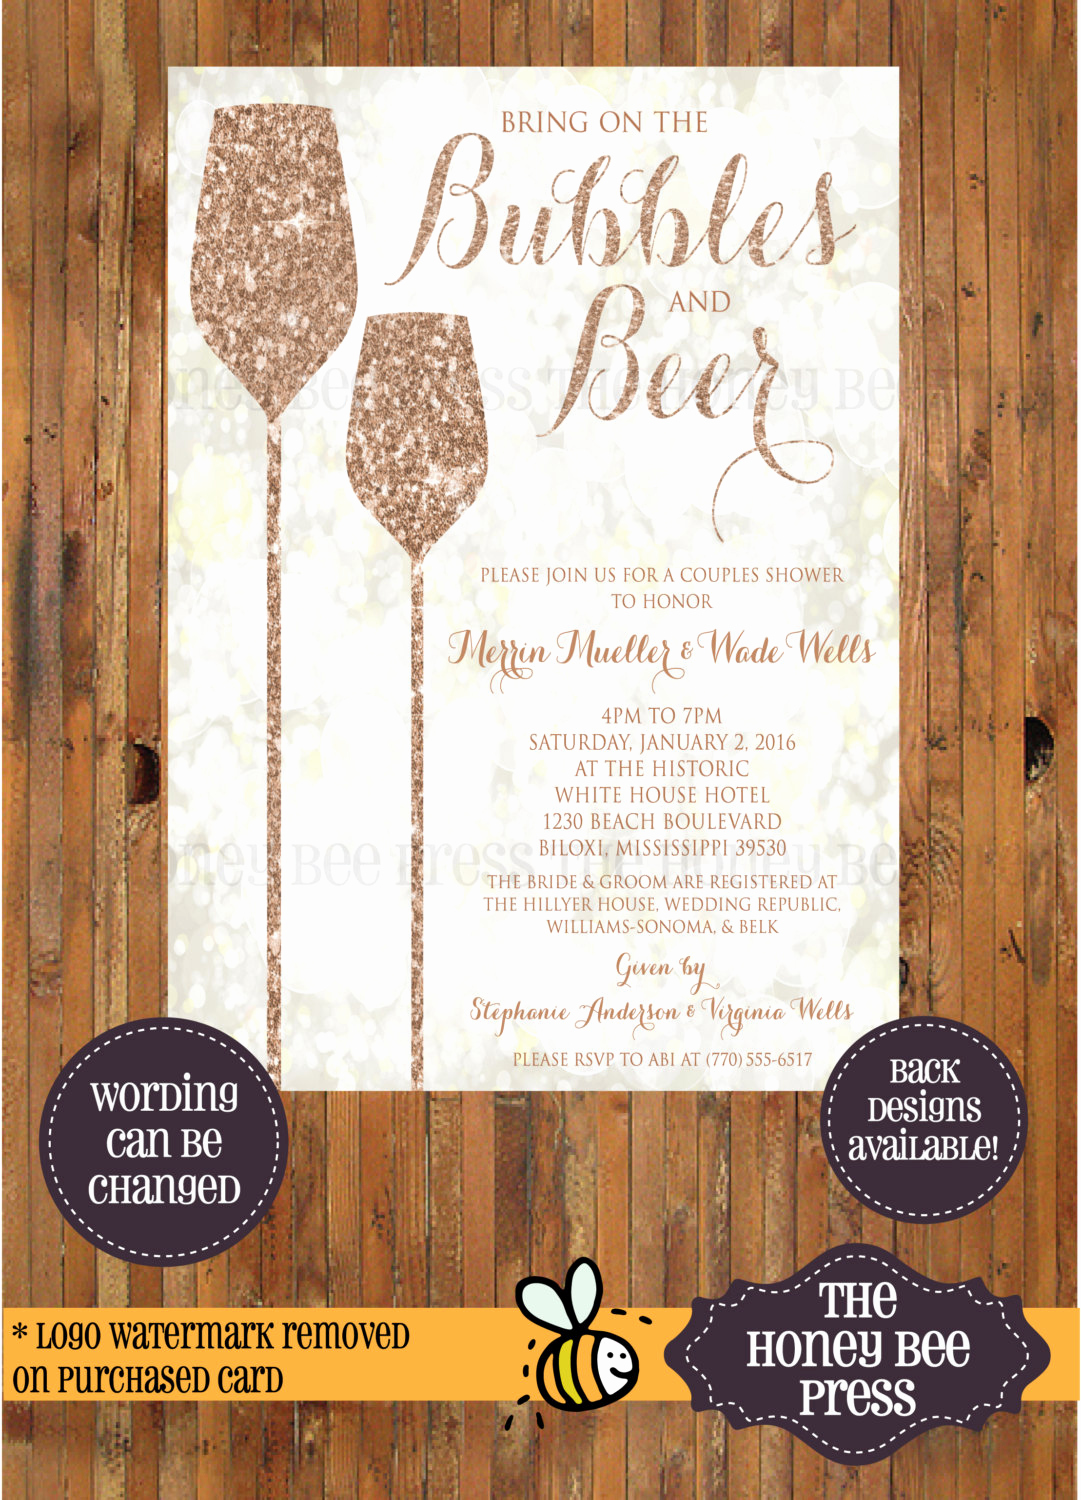 Couple Shower Invitation Wording Awesome Bubbles and Beer Bubbles and Bliss Brunch and Bubbly